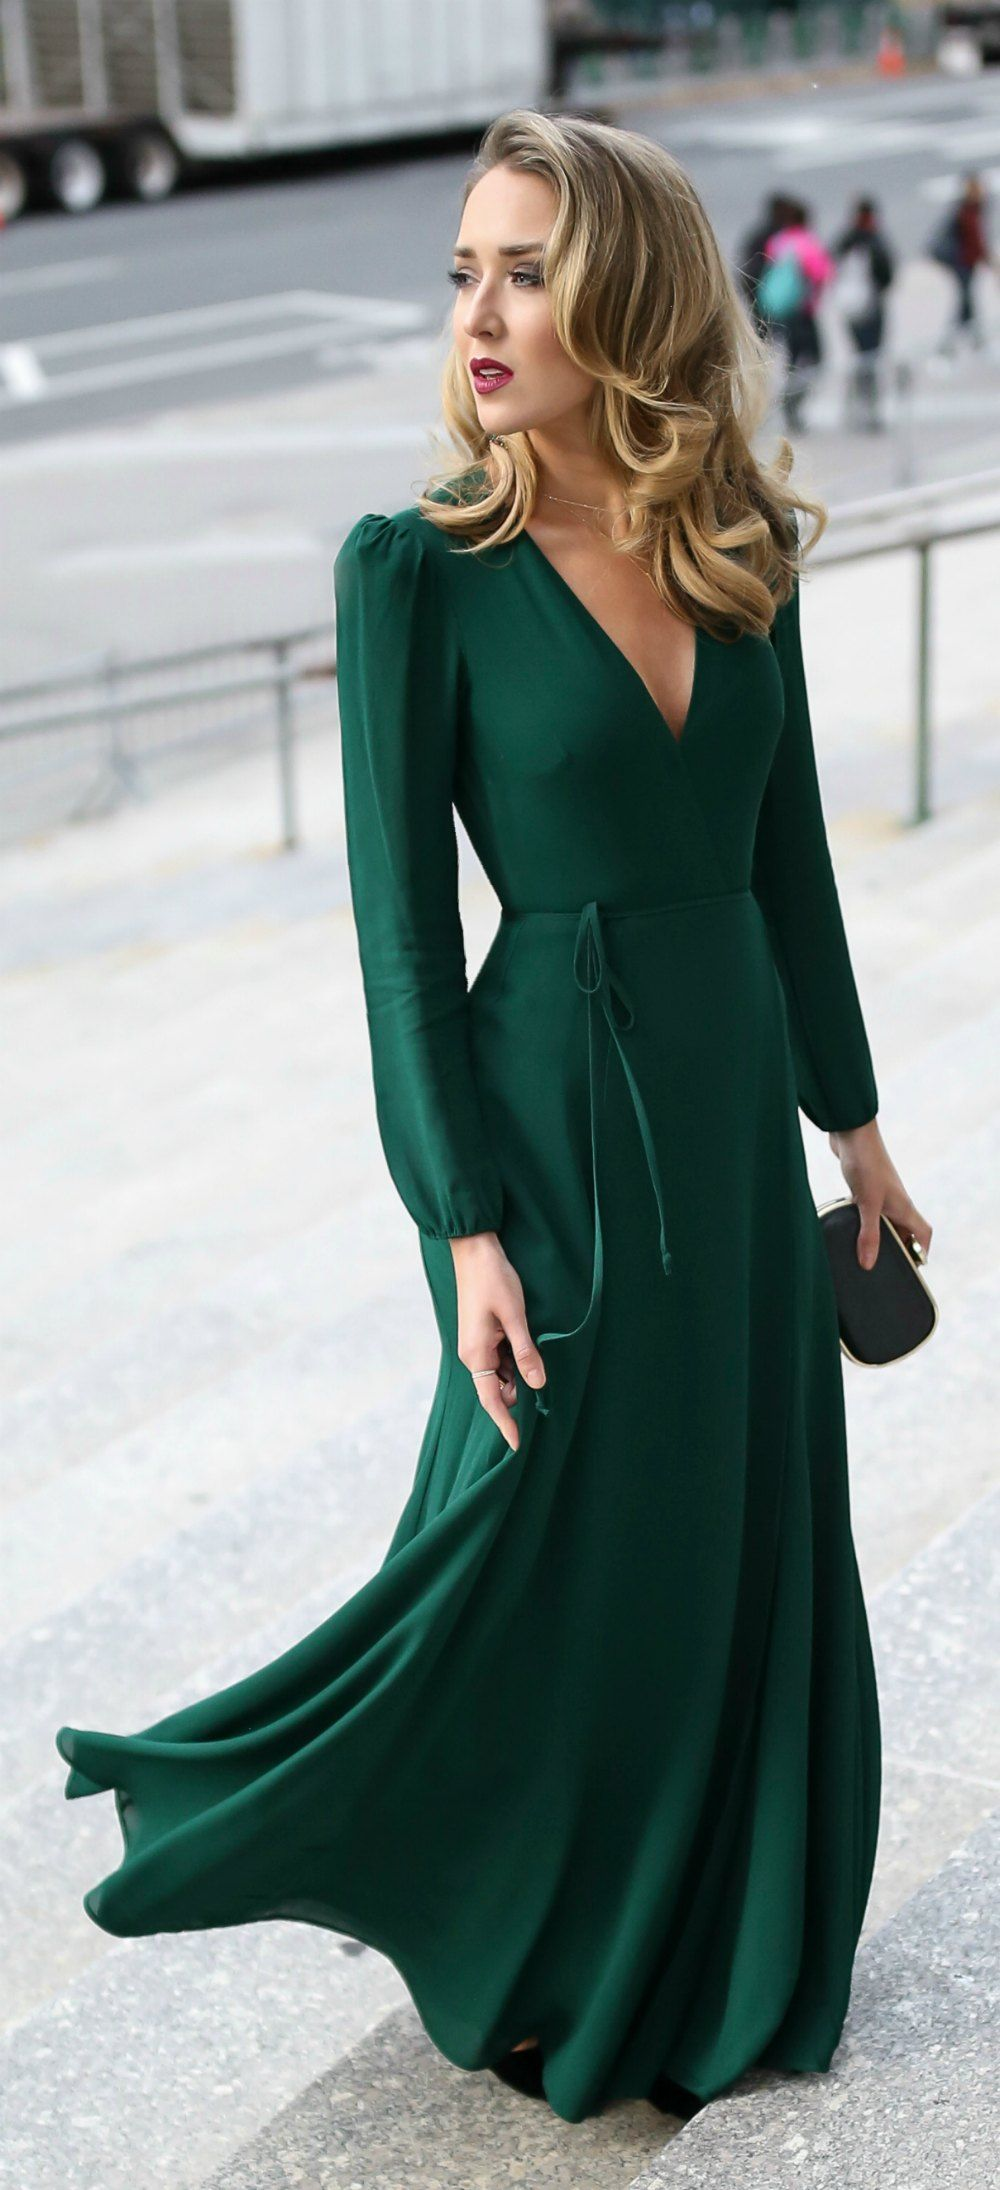 DRESSES IN  DAYS Black Tie Wedding Guest  Emerald green long